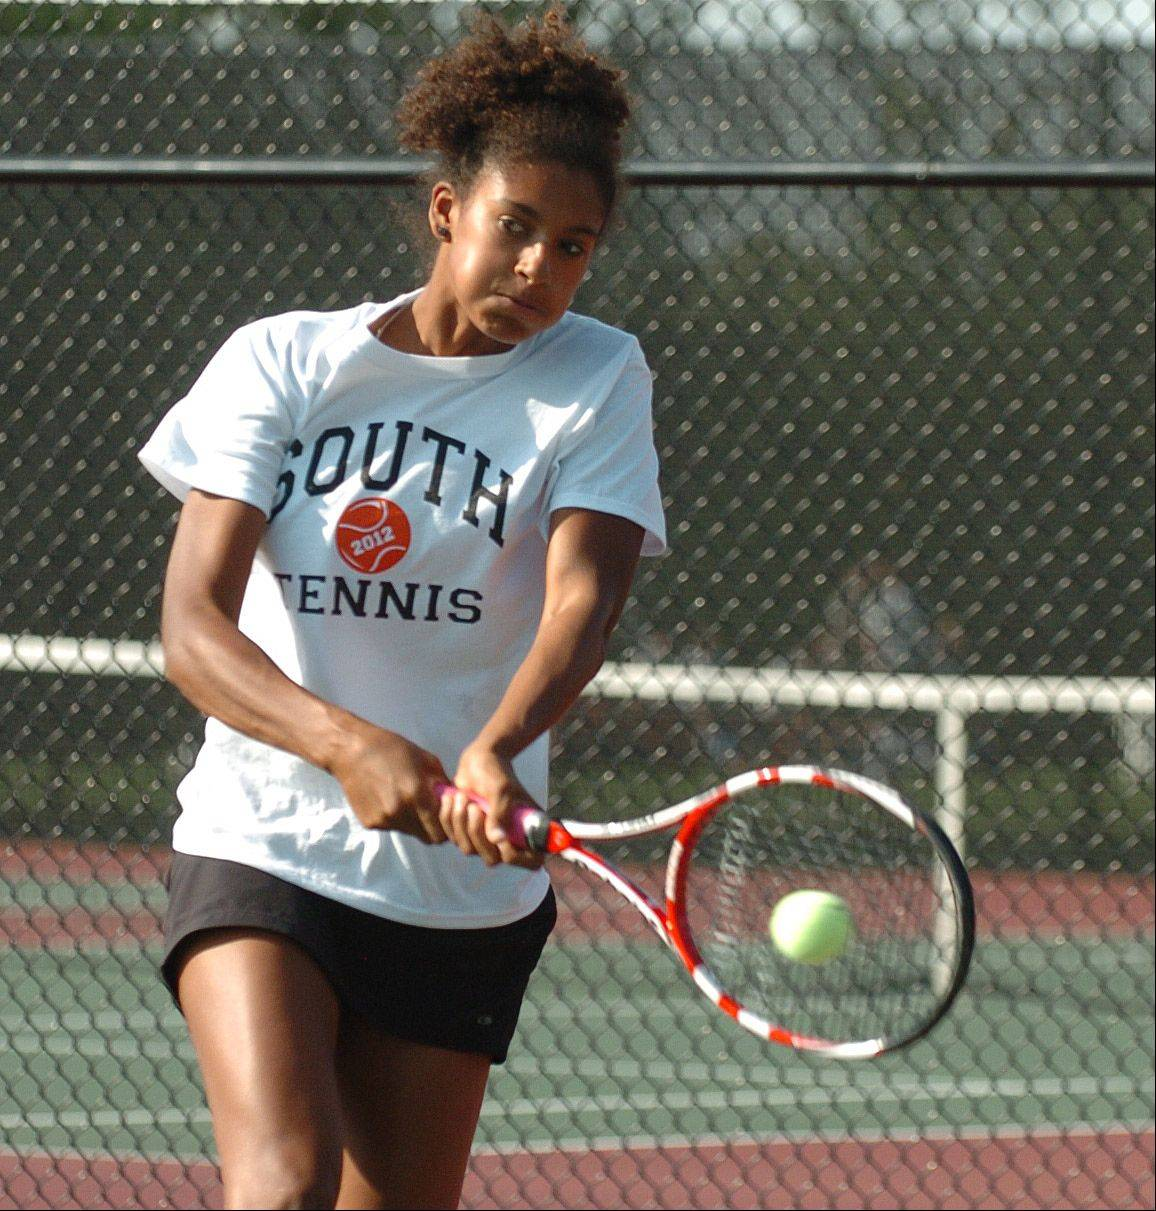 Keisha Clousing of Wheaton Warrenville South during the No. 1 singles match Thursday.